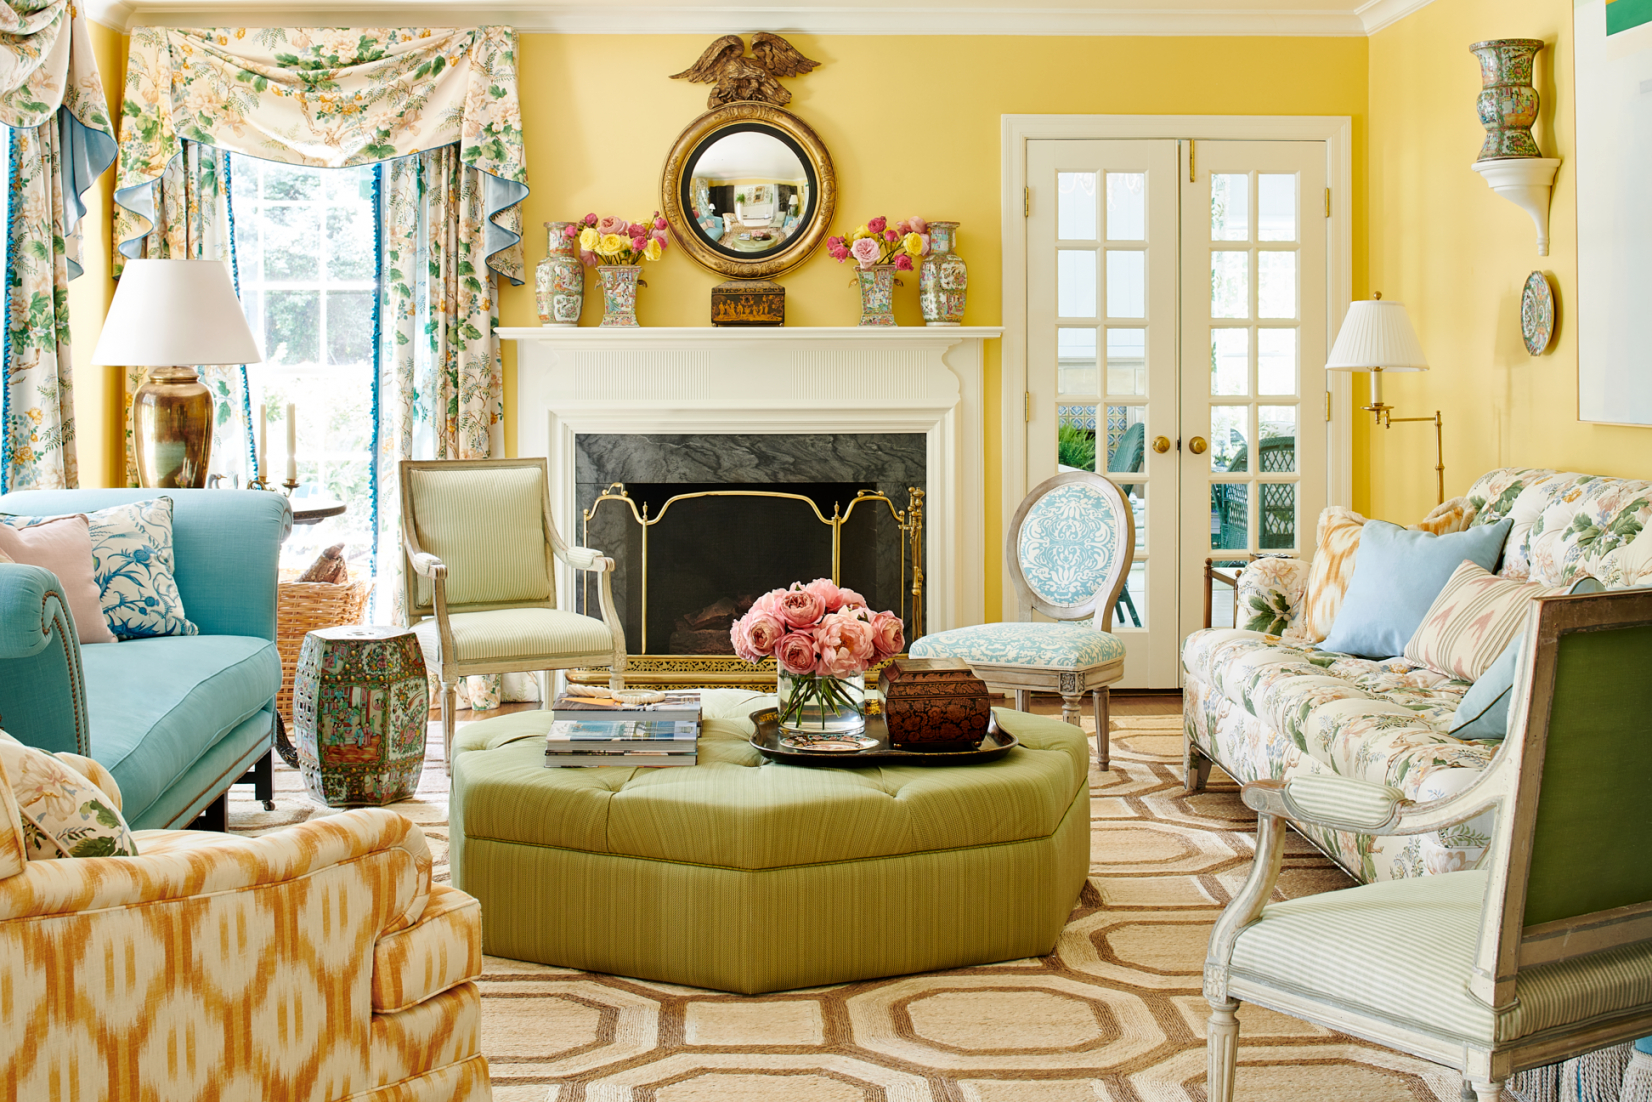 Best 30 Living Room Paint Colors - Beautiful Wall Color Ideas regarding Awesome Inspiration For Wall Paint Colors For Living Room